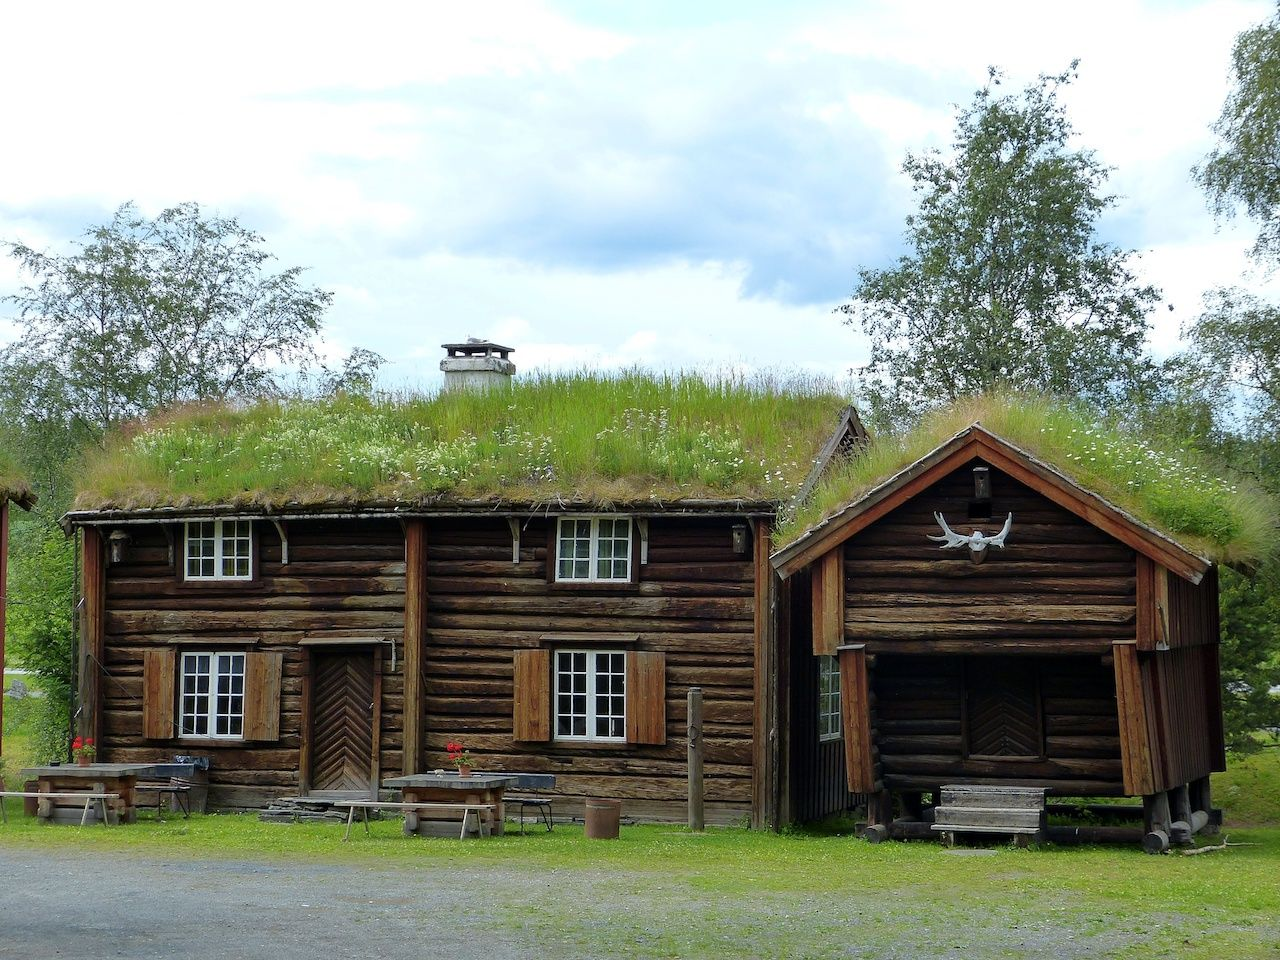 Historical timber buildings in Stiklestad National Cultural Center in Norway